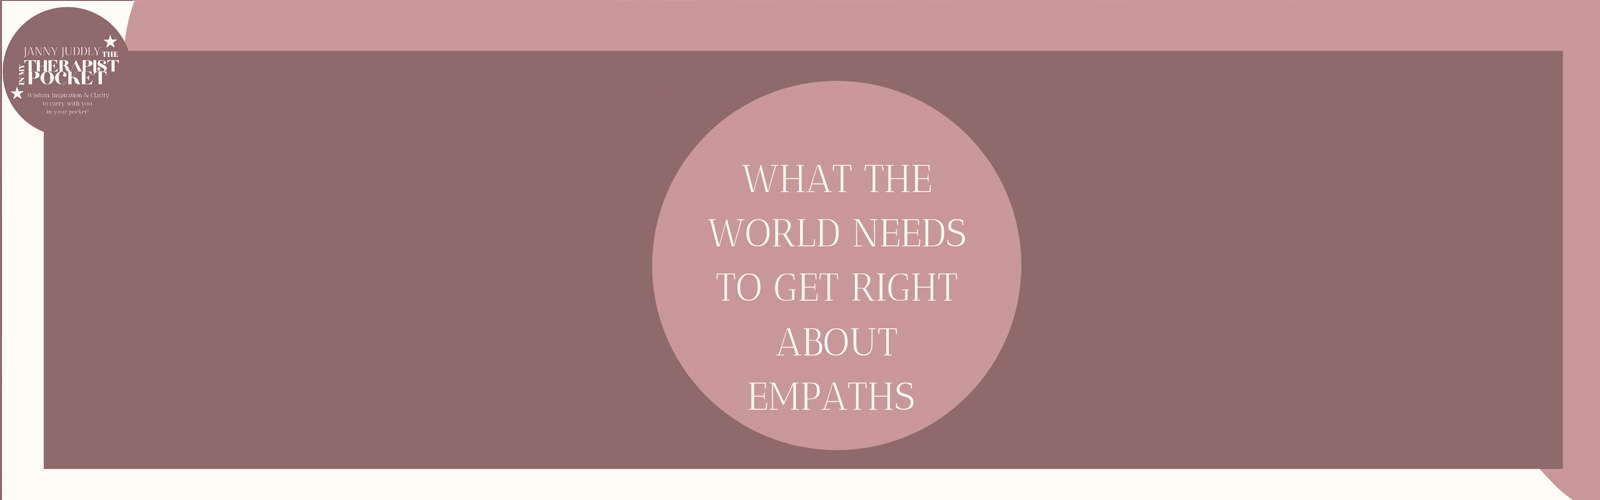 WHAT THE WORLD NEEDS TO UNDERSTAND ABOUT EMPATHS